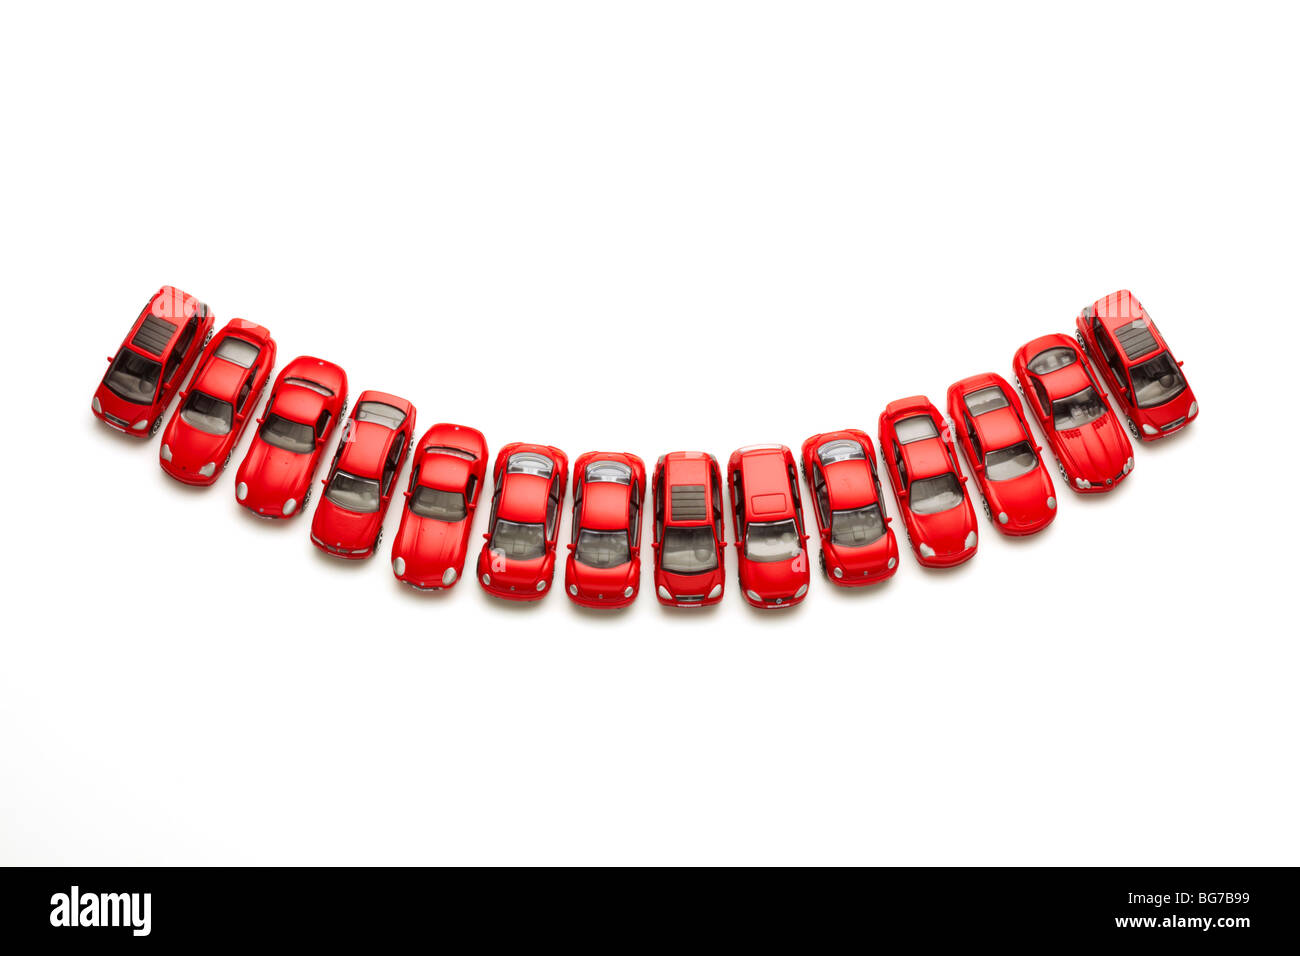 Model Cars in Smile Shape - Stock Image